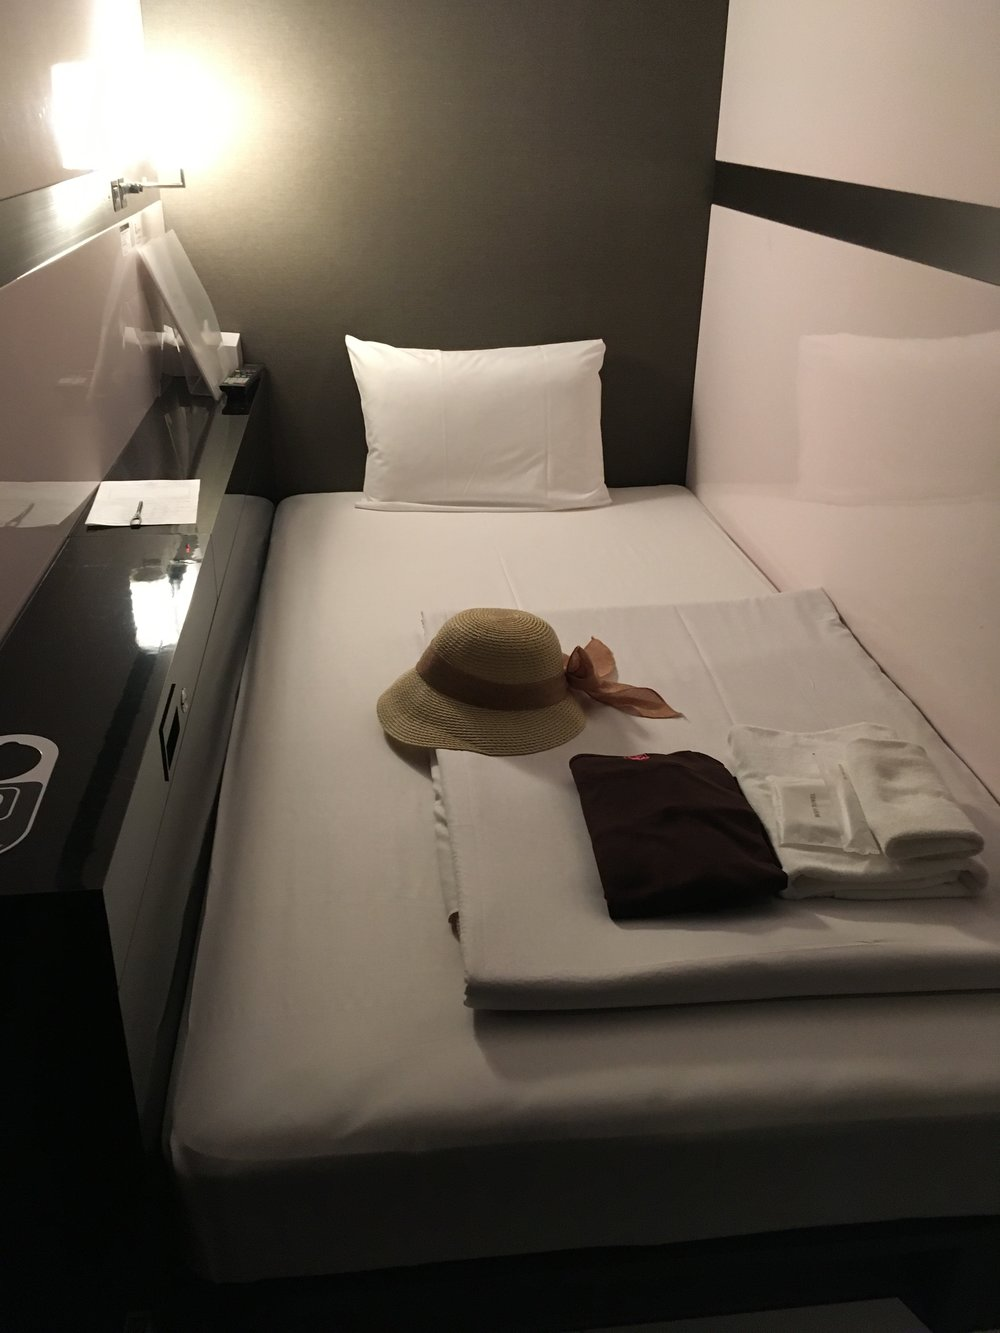 After a long day of walking, I was excited to arrive at my capsule hotel. Simply comfortable.